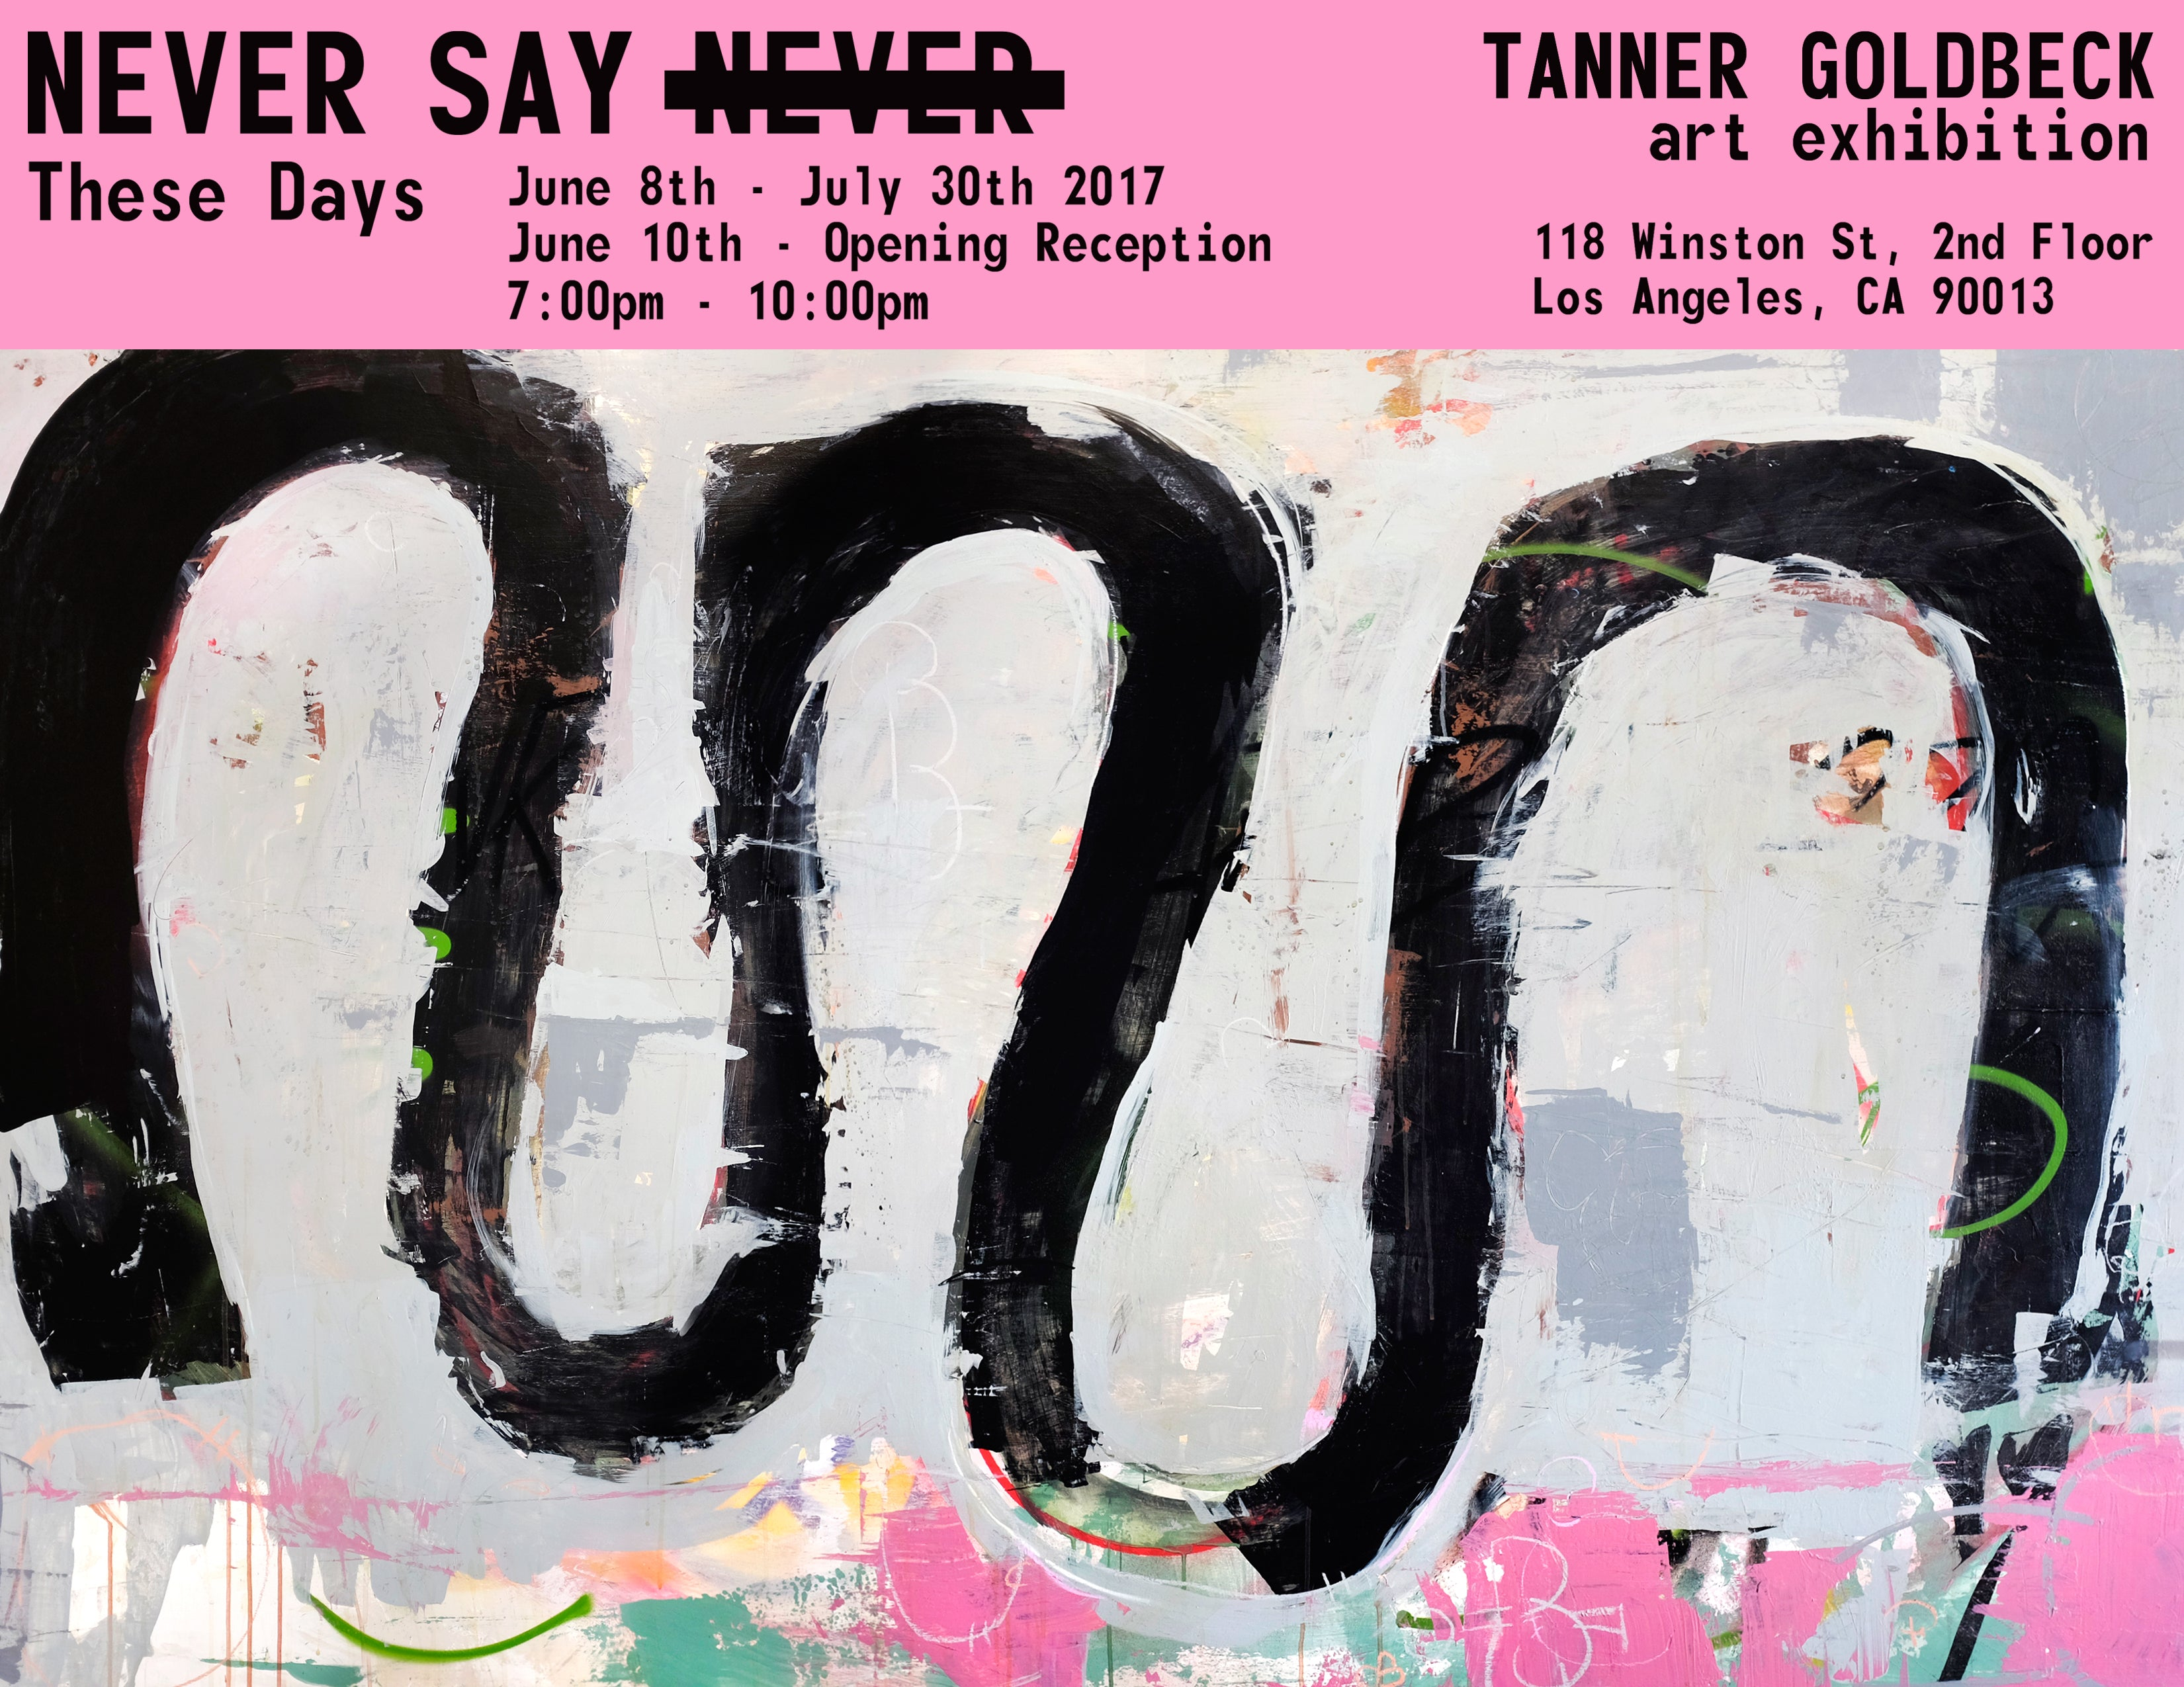 NEVER SAY NEVER | Tanner Goldbeck